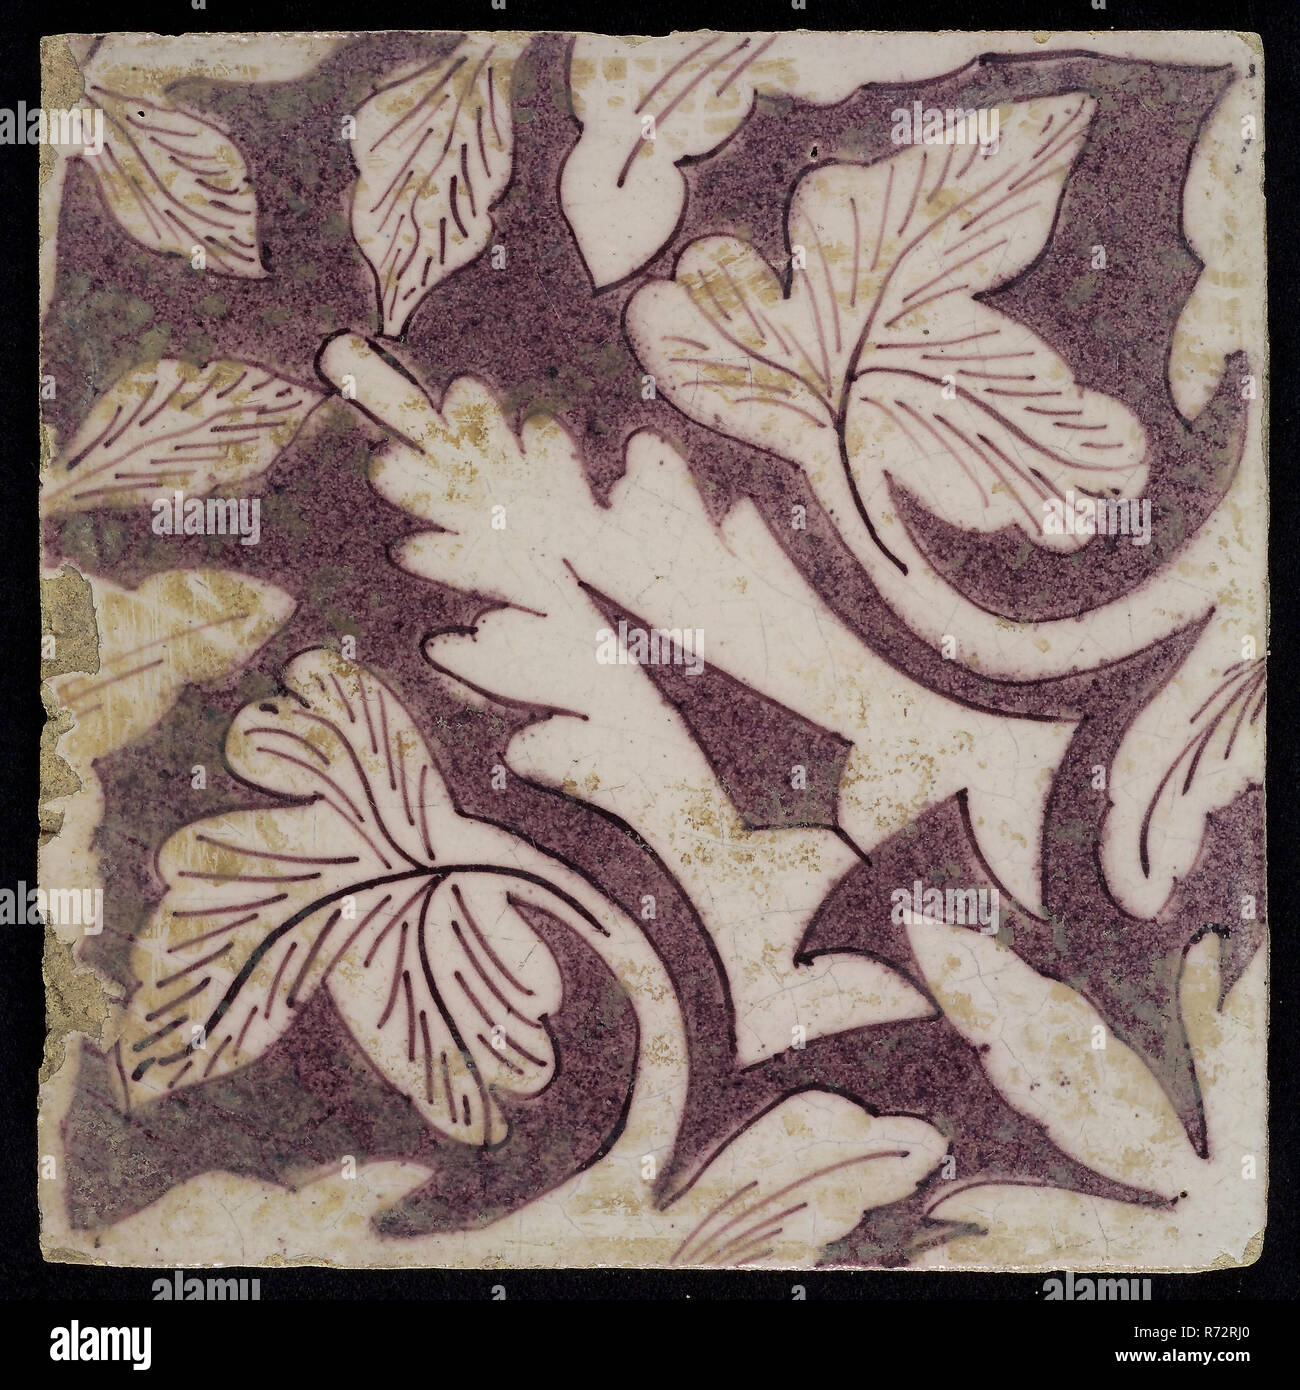 Sprinkled purple ornament tile, openwork stylized pointed leaves coming from corner, surrounded by creeper leaves, oak leaves, wall tile tile material ceramic earthenware enamel, Baked 2x glazed painted Yellow shard square two nail holes. Purple on white. Stock Photo